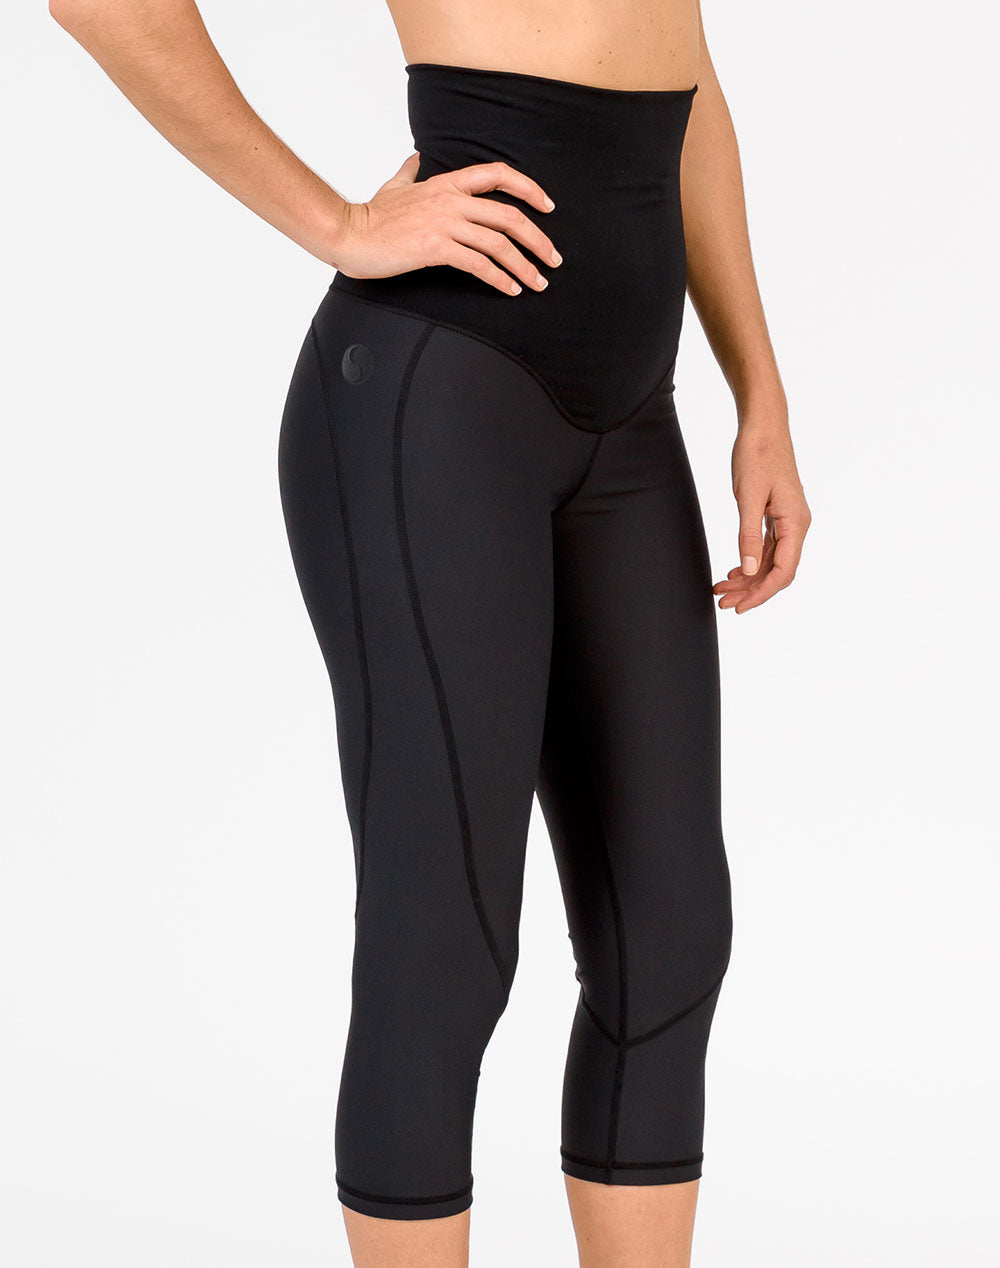 front view active mum wearing black 3/4 maternity leggings